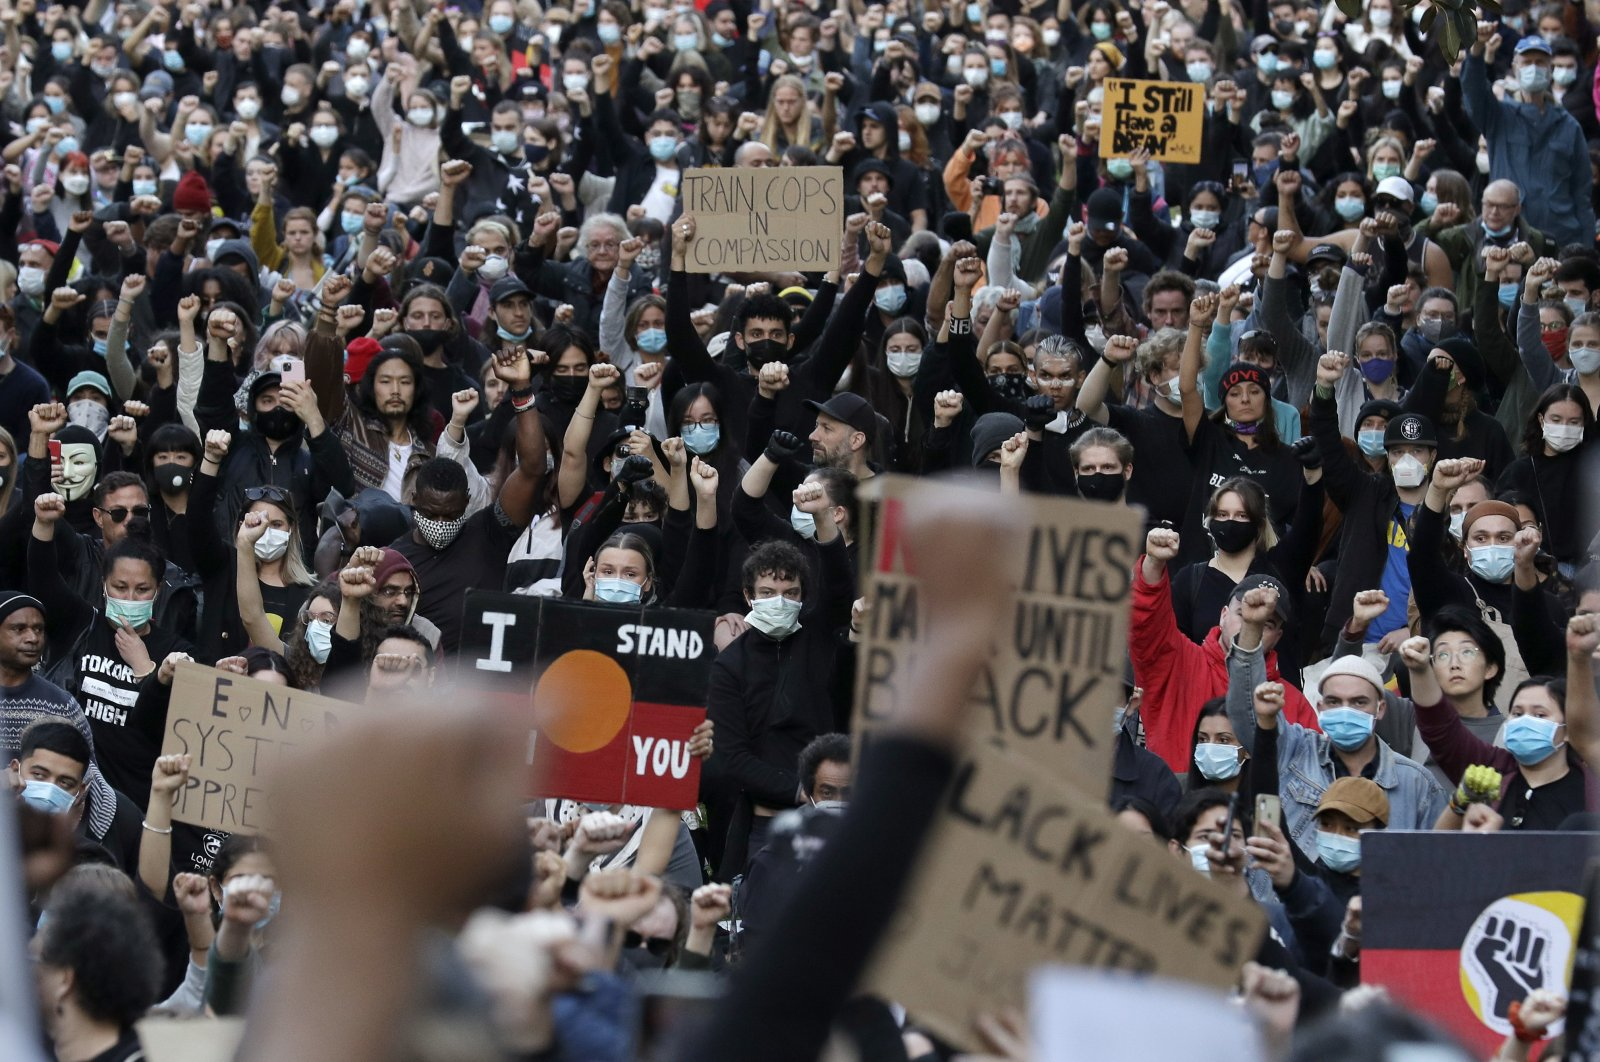 Protesters gather in Sydney, Saturday, June 6, 2020, to support the cause of U.S. protests over the death of George Floyd. (AP Photo)